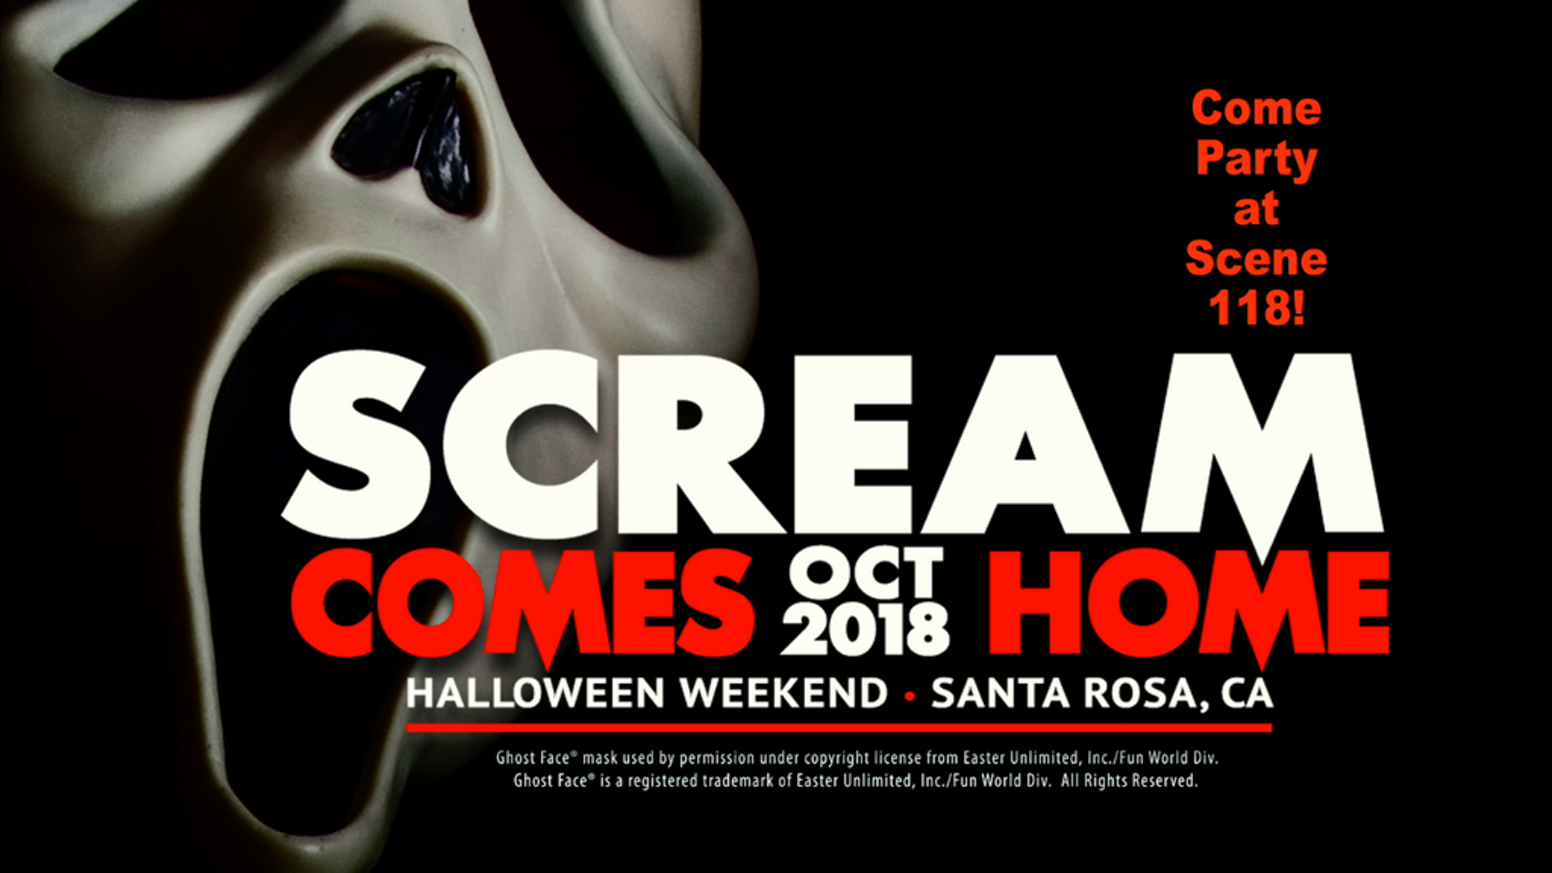 A once-in-a-lifetime SCREAM gathering and screening of the iconic horror